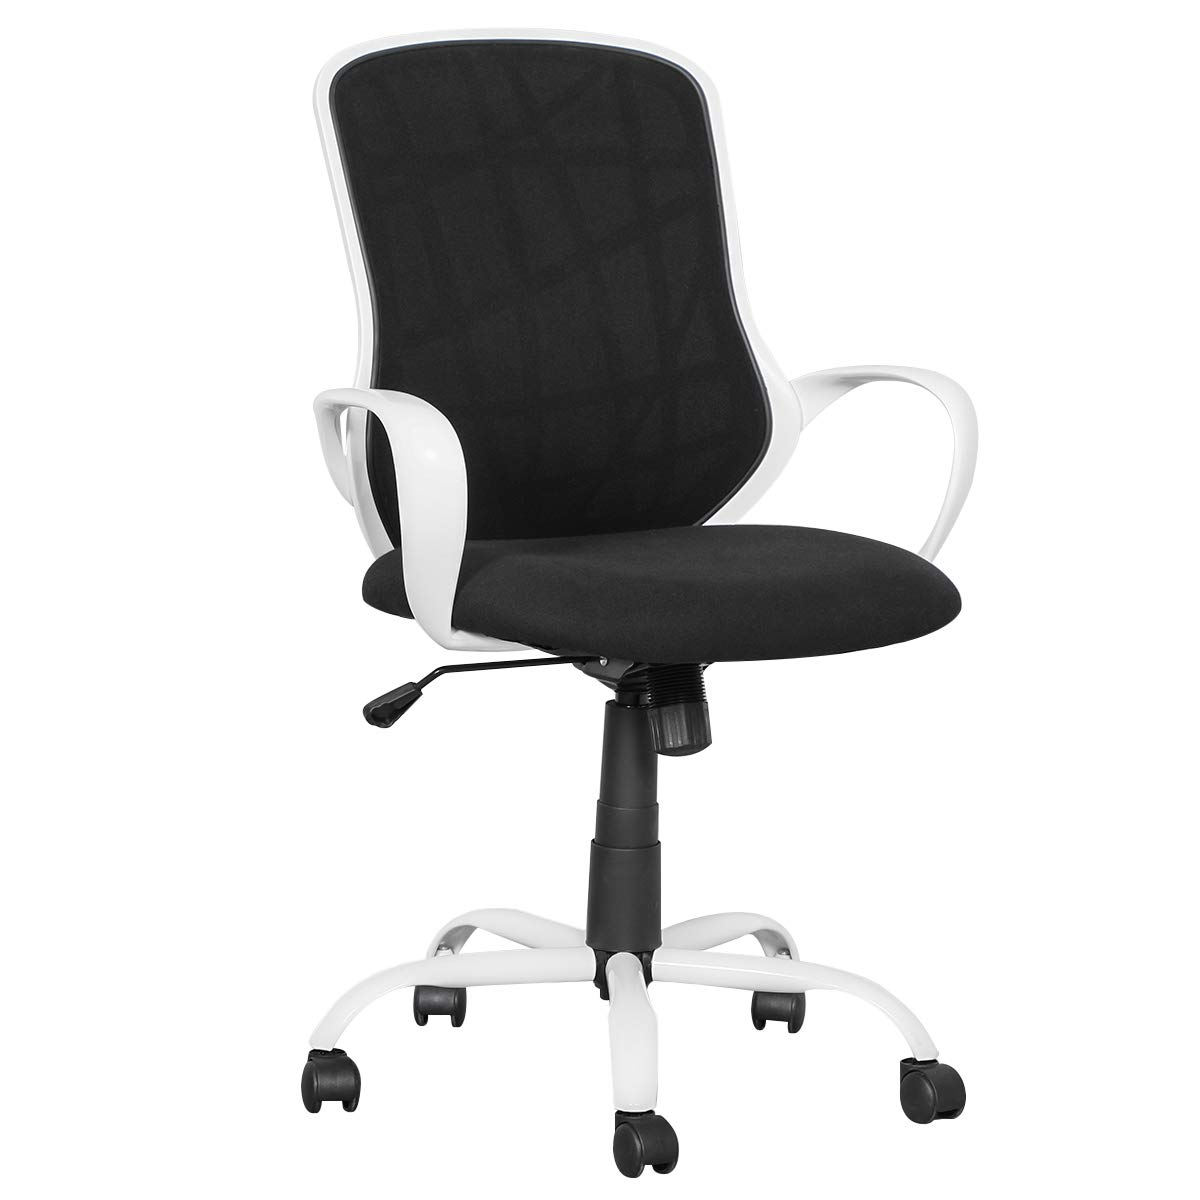 Coavas Mid Back Office-Chair Home Leisure Adjustable Swivel Gaming Desk Chair Ergonomic Task Computer Chair with Armrests,Classic White Black